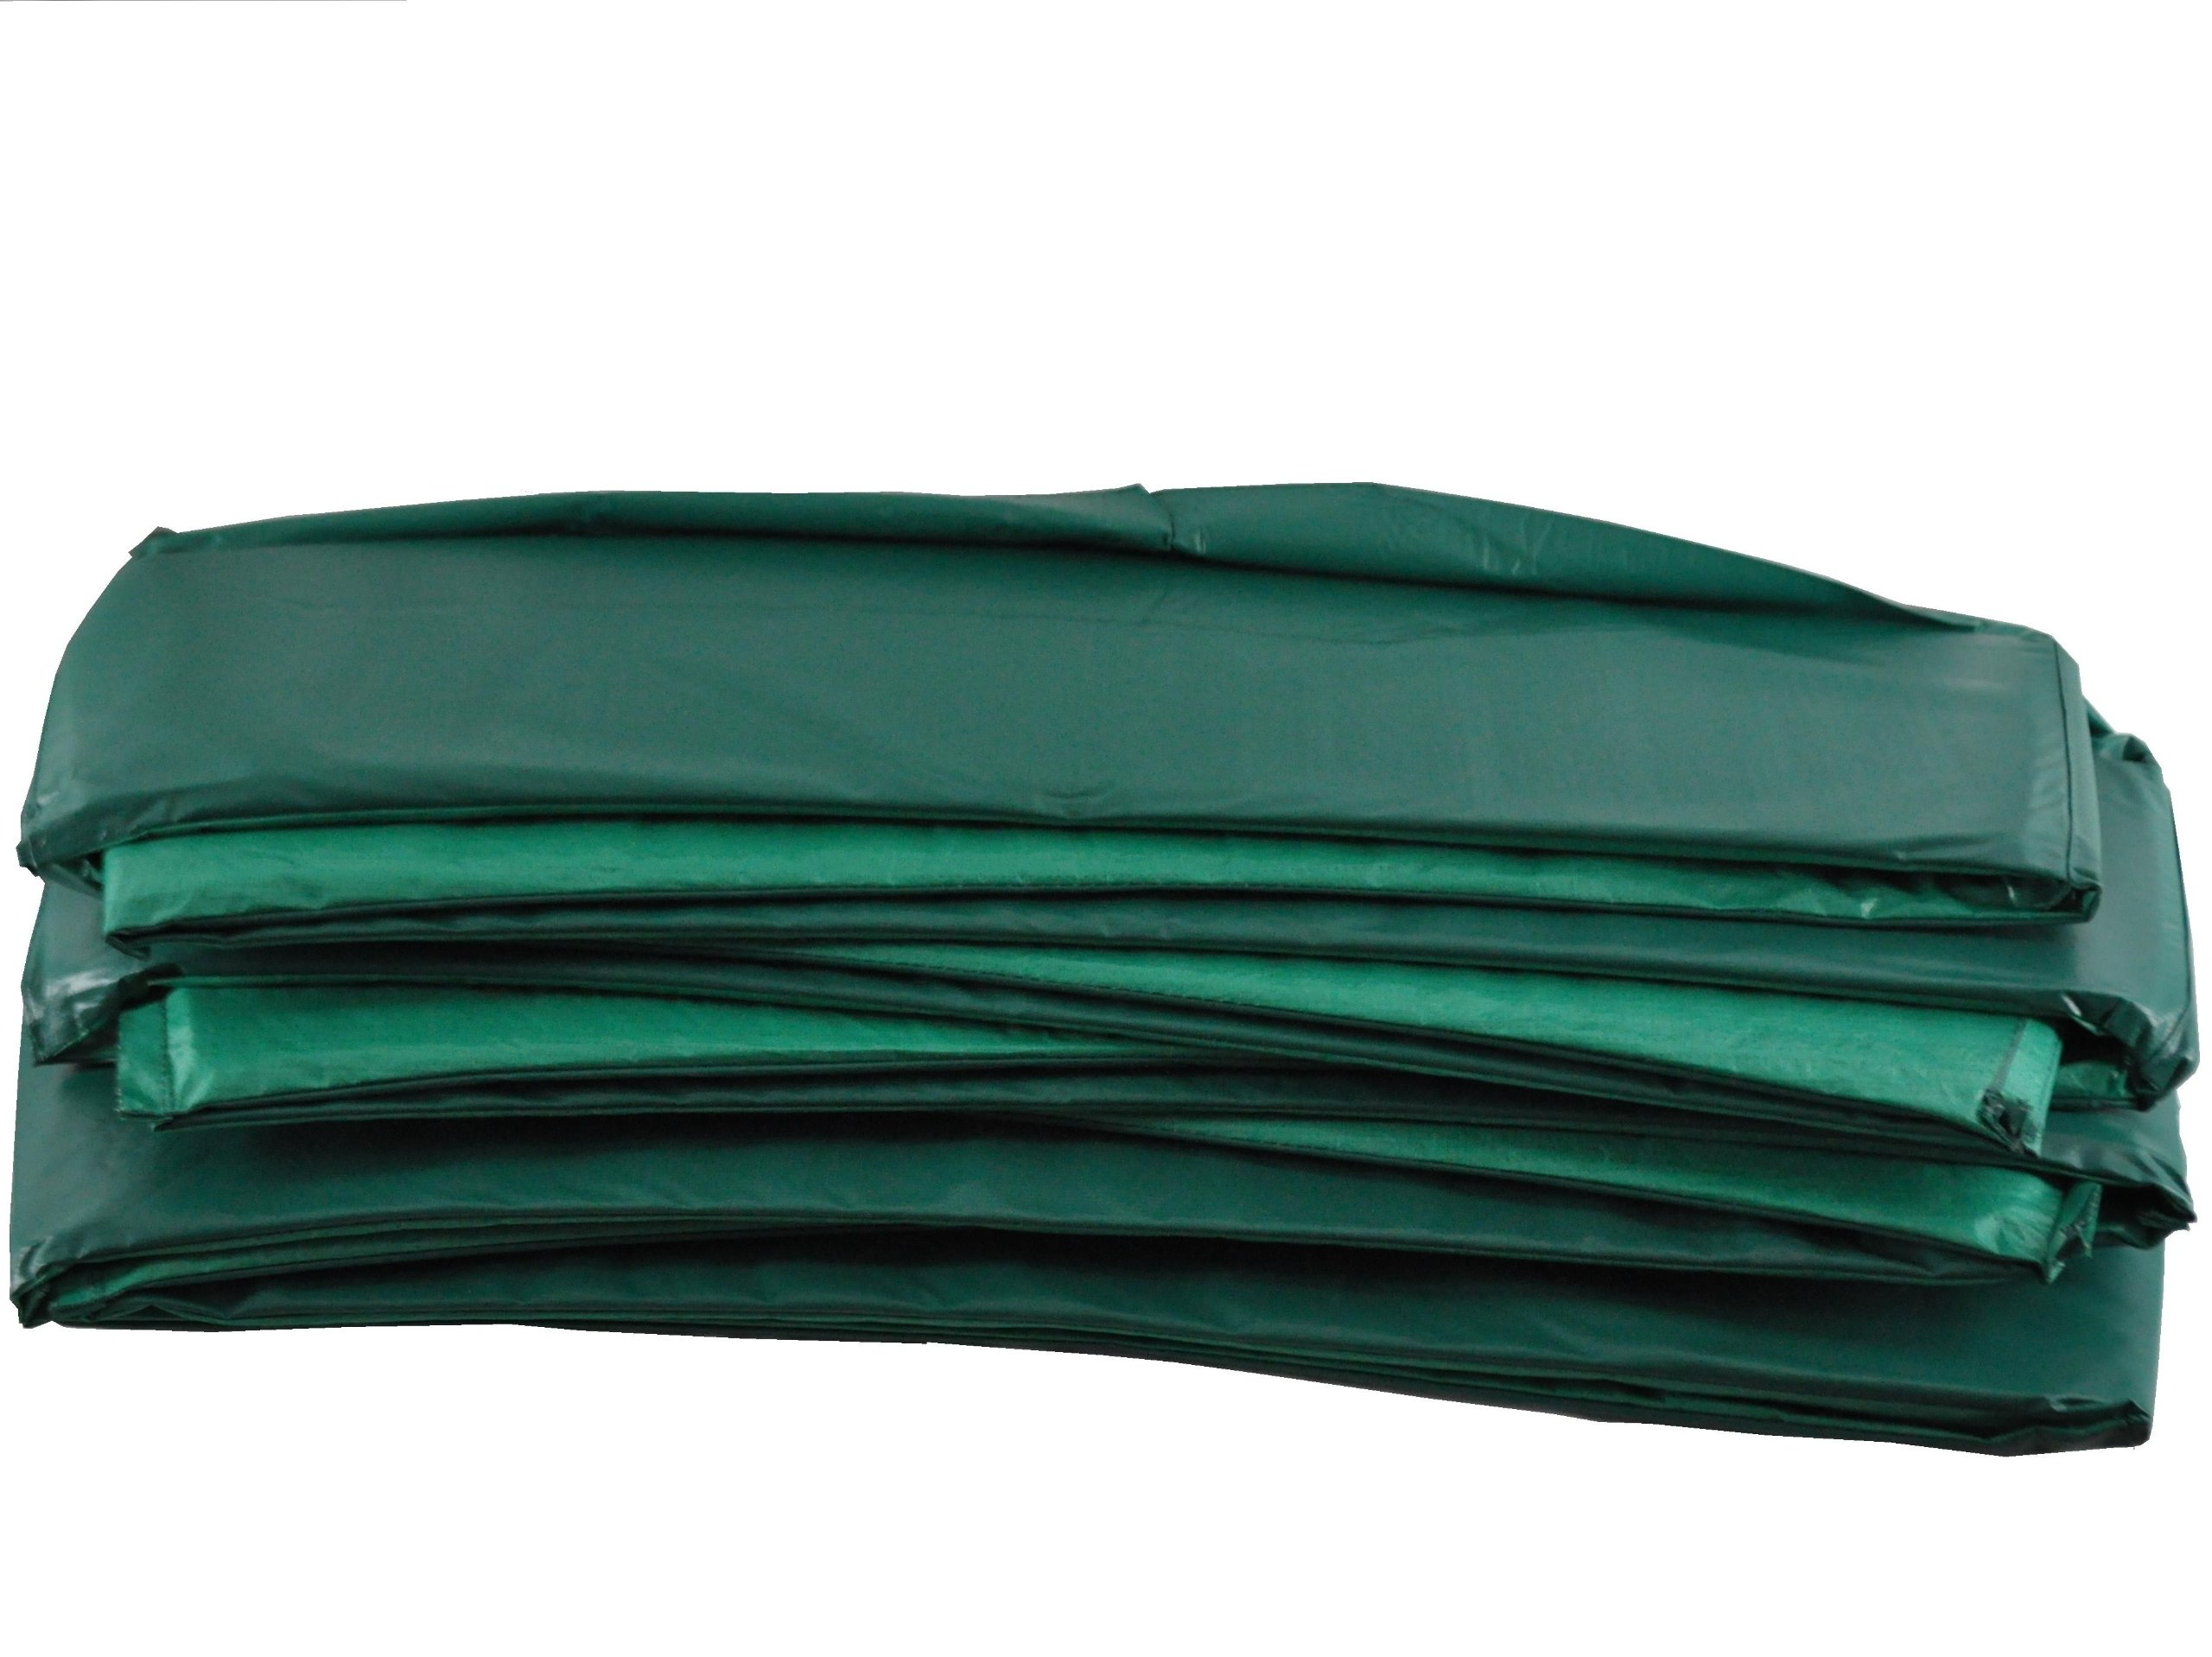 Upper Bounce Super Trampoline Safety Pad (Spring Cover) Fits for 14-Feet Round 10-Inch Wide Trampoline Frames, Green by Upper Bounce (Image #3)